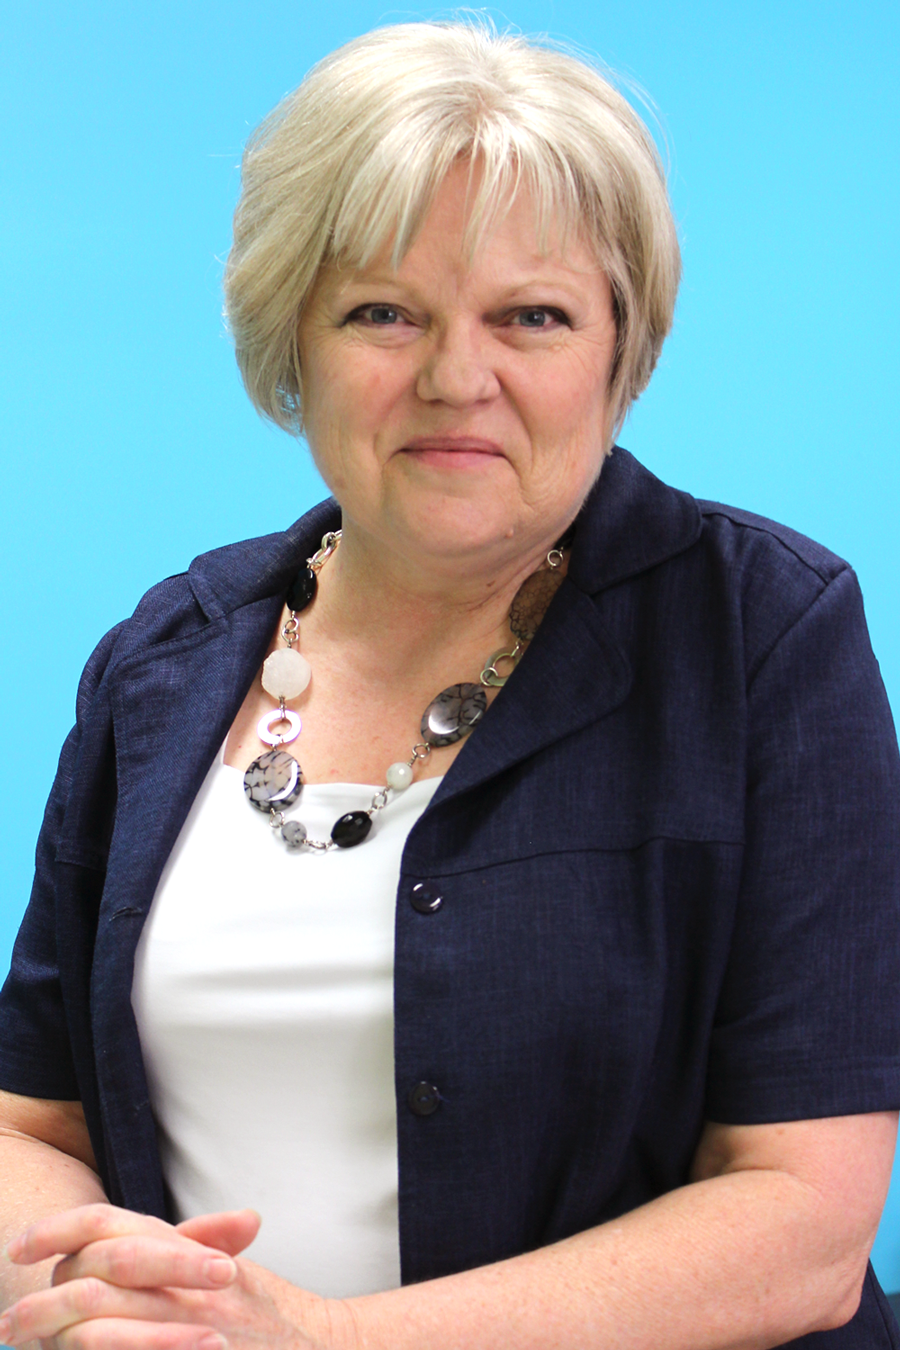 Theresa Morley